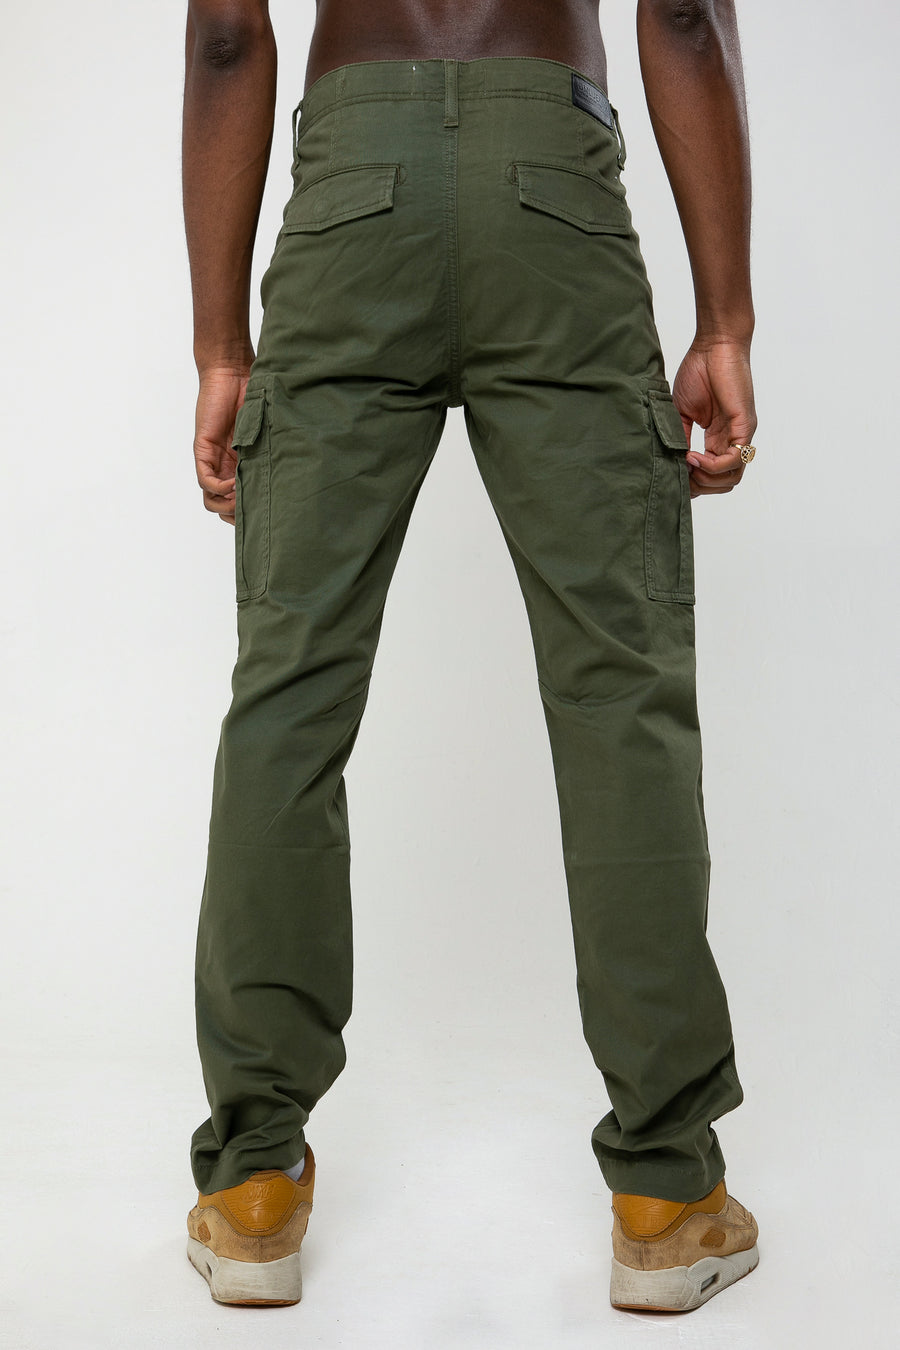 Wade Utility Cargo Pant In Army Green - DML Jeans